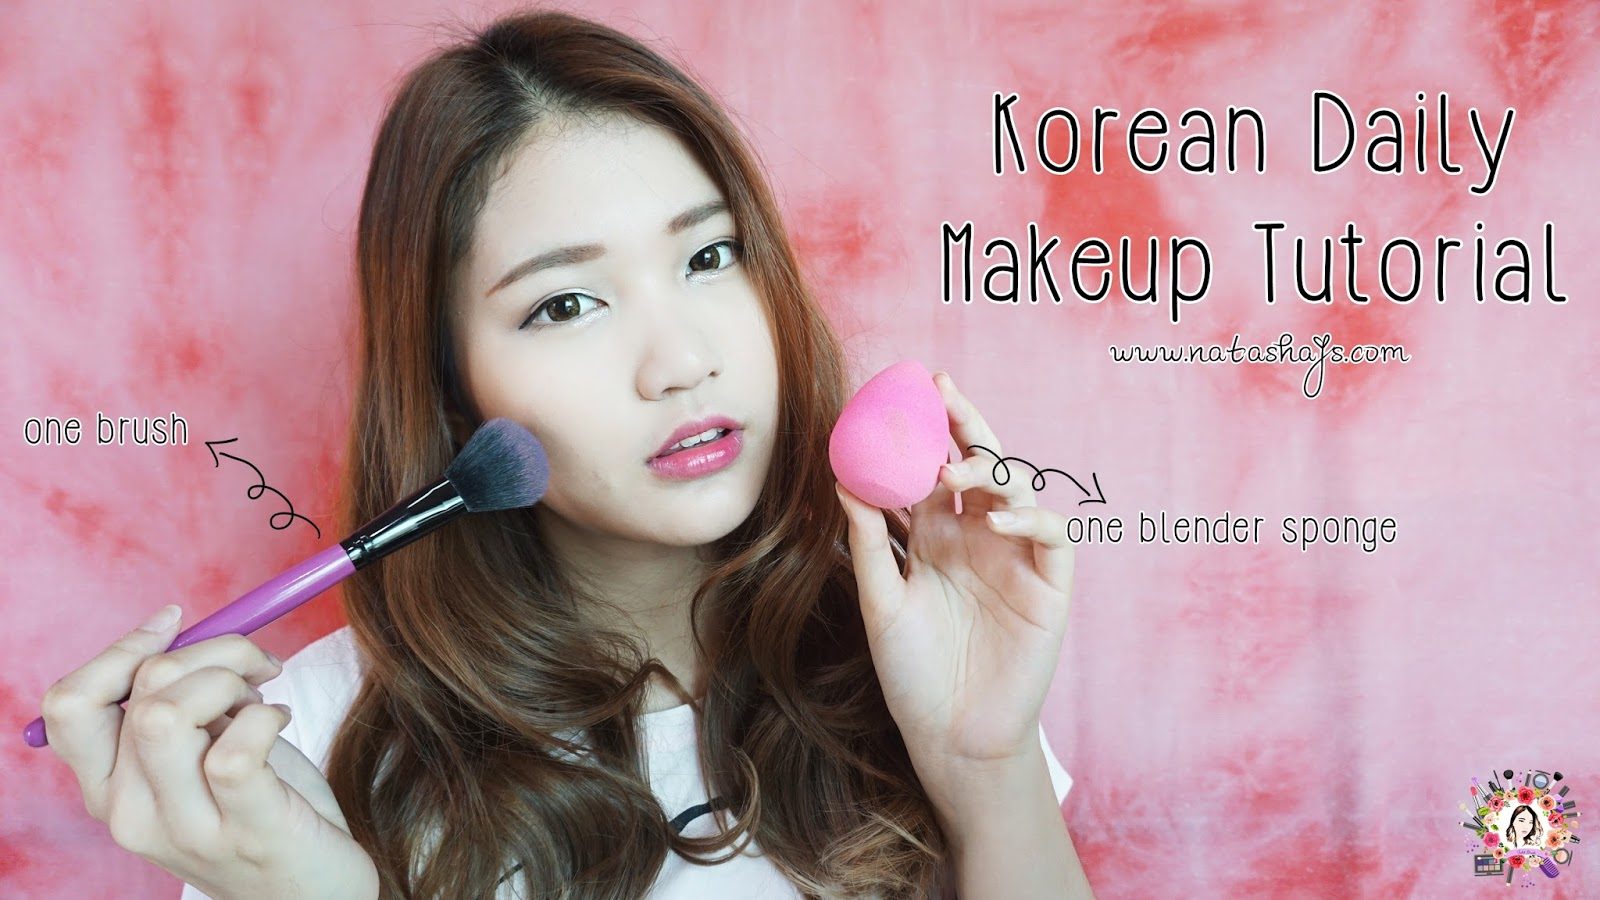 korean-daily-makeup-tutorial-using-only-one-blender-sponge-and-one-brush